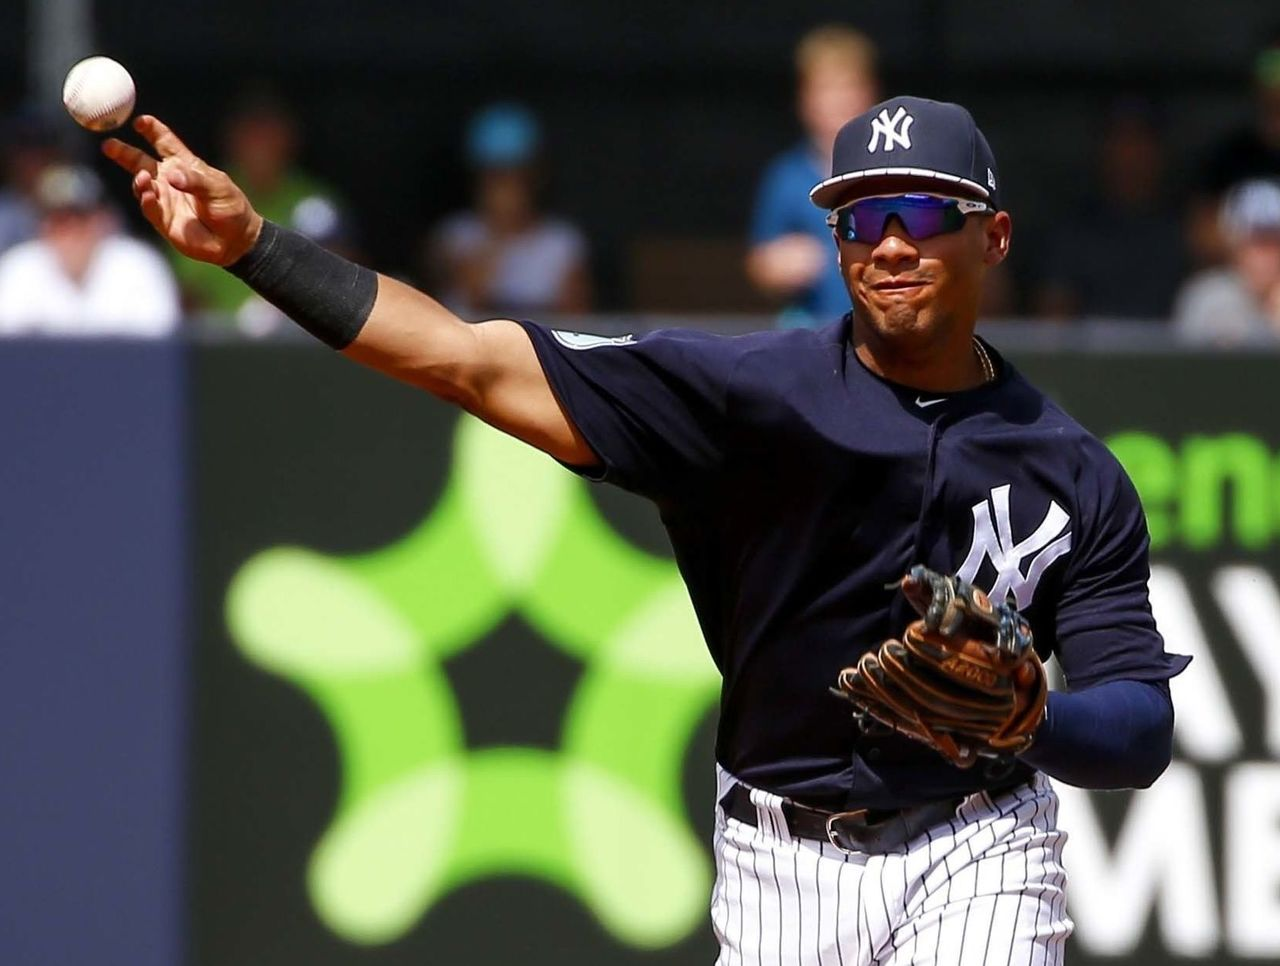 Cropped 2017 03 07t212734z 884513195 nocid rtrmadp 3 mlb spring training tampa bay rays at new york yankees